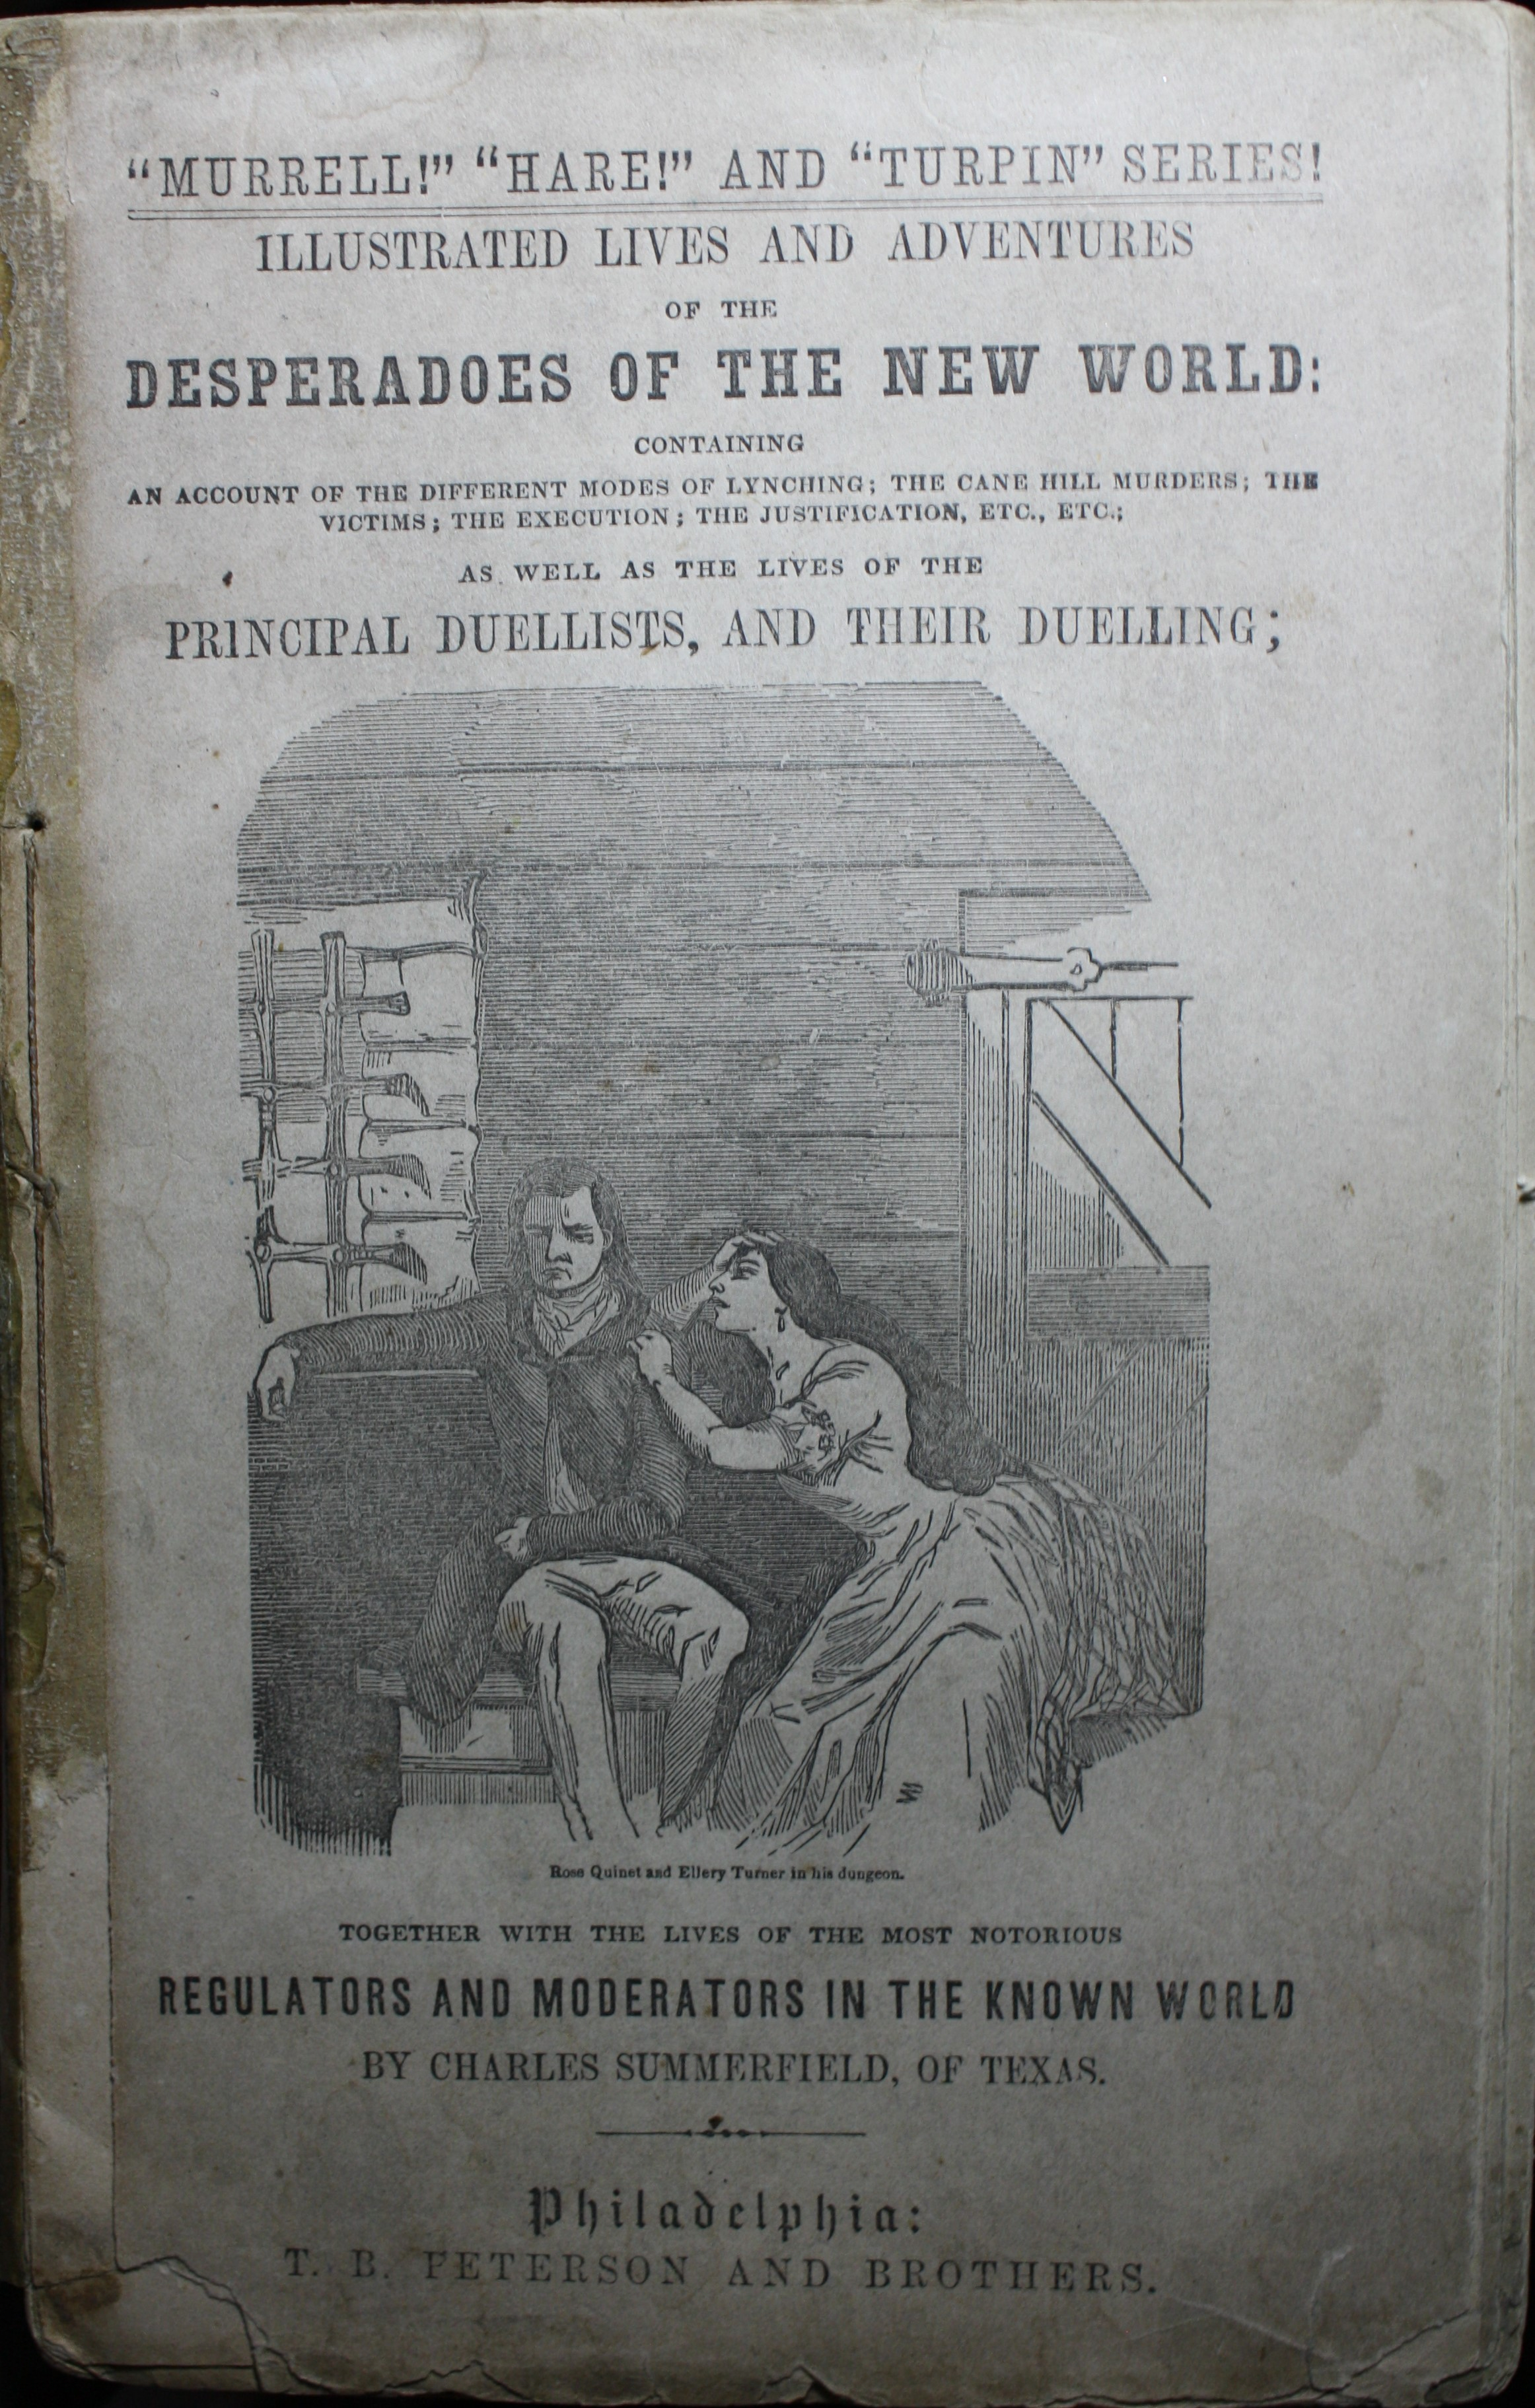 Image for Illustrated Lives and Adventures of the Desperadoes of the New World, Containing An Account of the Different Modes of Lynching, The Cane Hill Murders, The Victims, the Execution, the   Justification, Etc. Etc. As Well as the Lives of the Pri